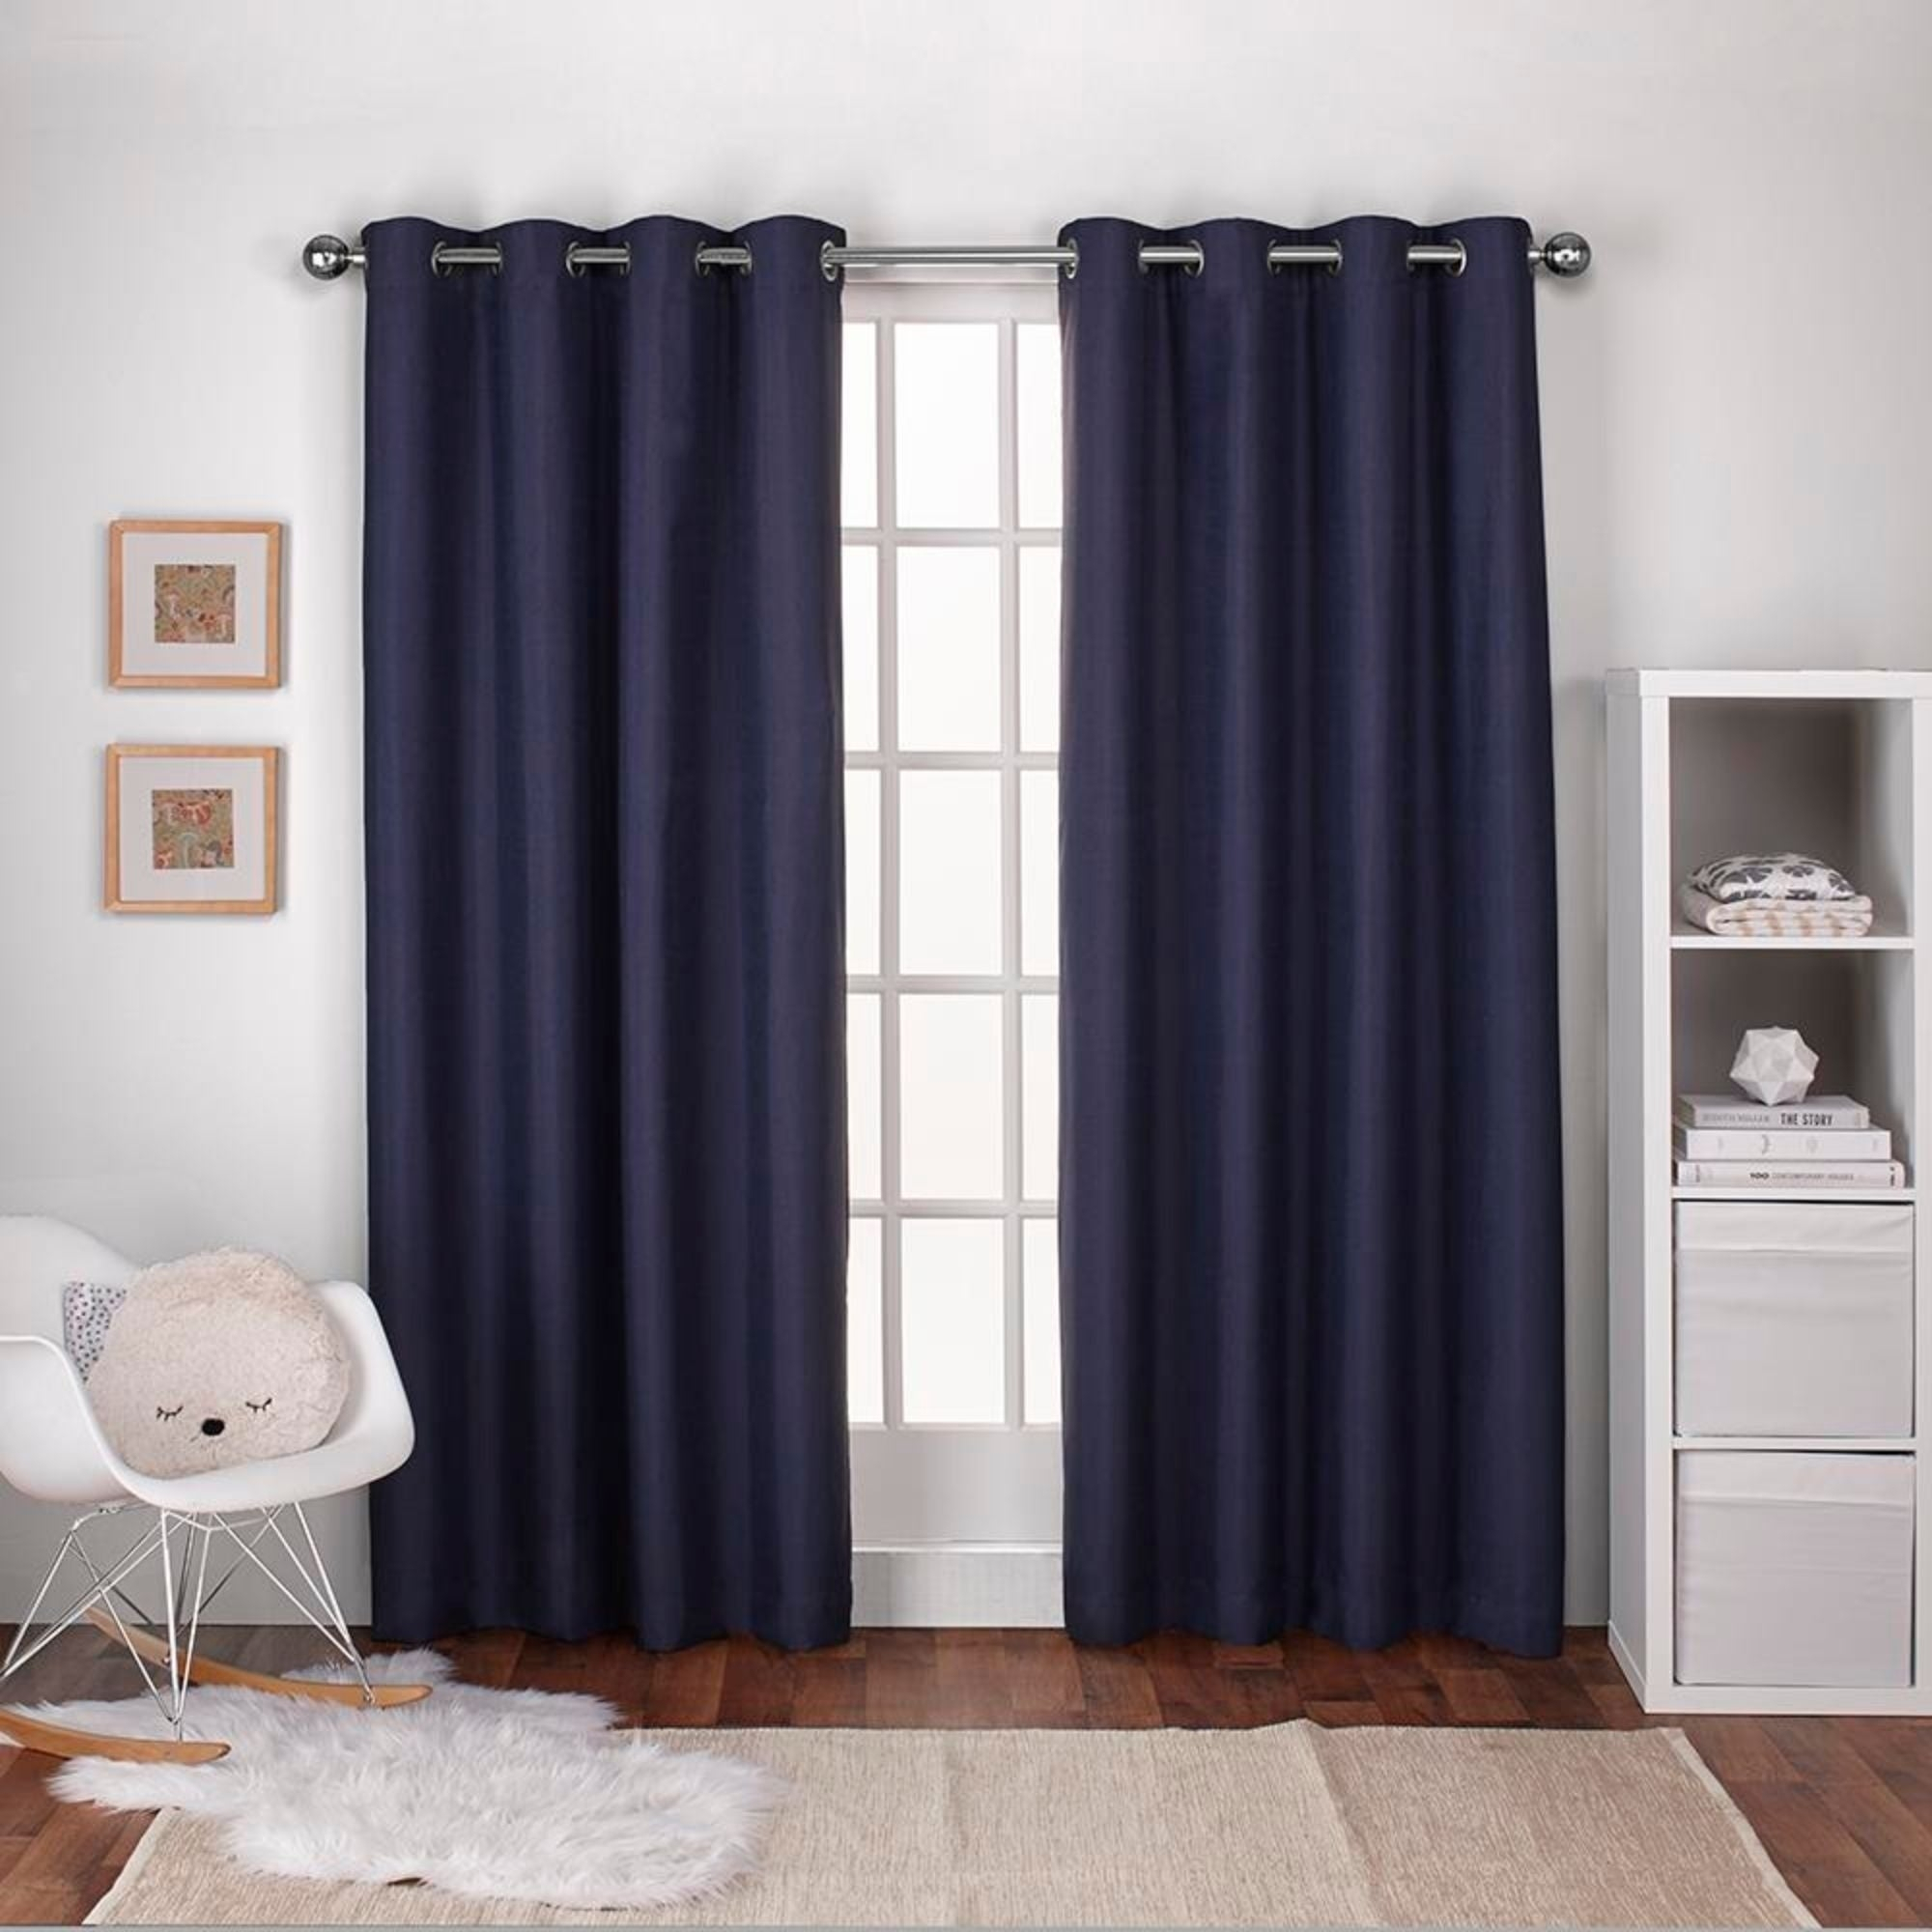 Ati Home Linen Thermal Woven Blackout Grommet Top Curtain Panel Pair With Woven Blackout Grommet Top Curtain Panel Pairs (View 9 of 30)